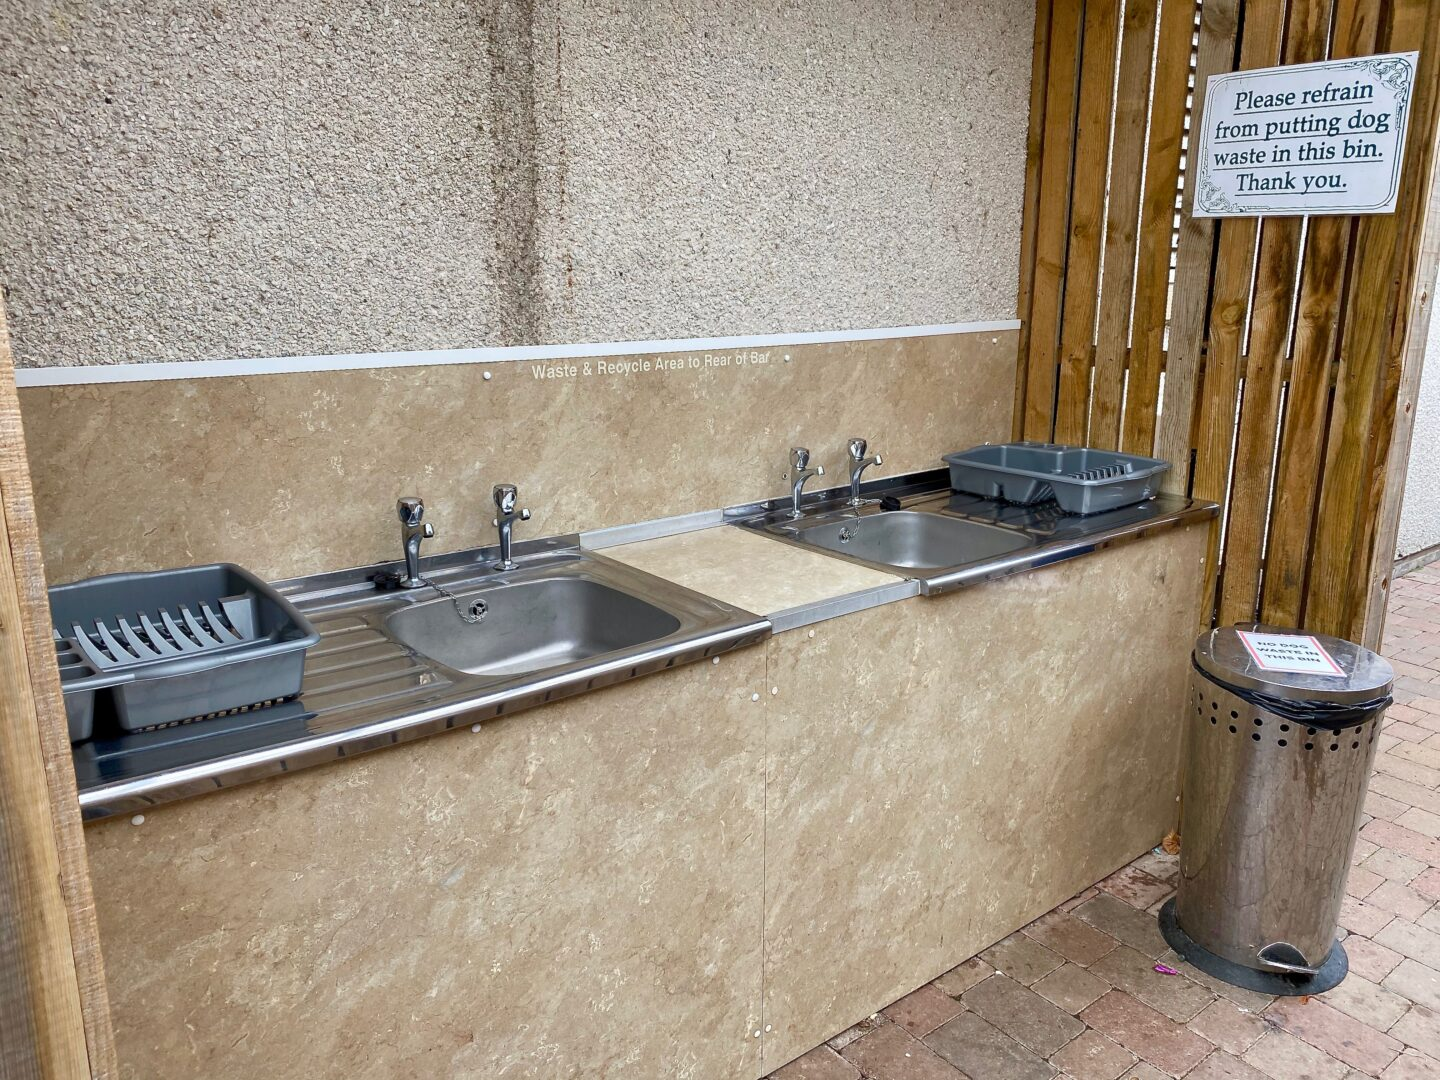 The dishwashing facility of two sinks with two drainers and a bin.